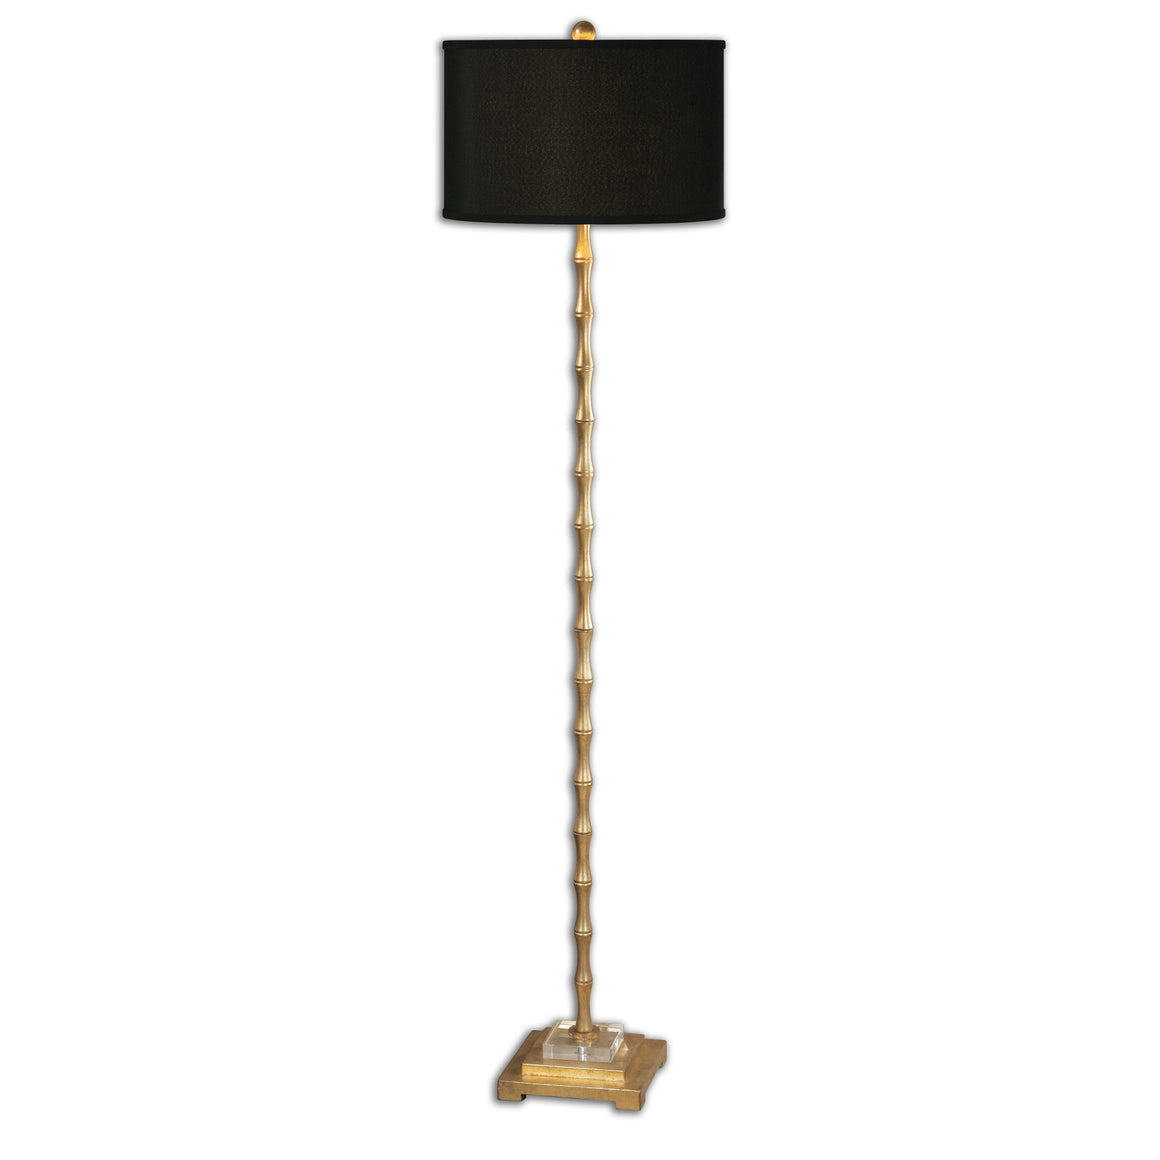 Lighting - Bamboo Floor Lamp - Antique Gold